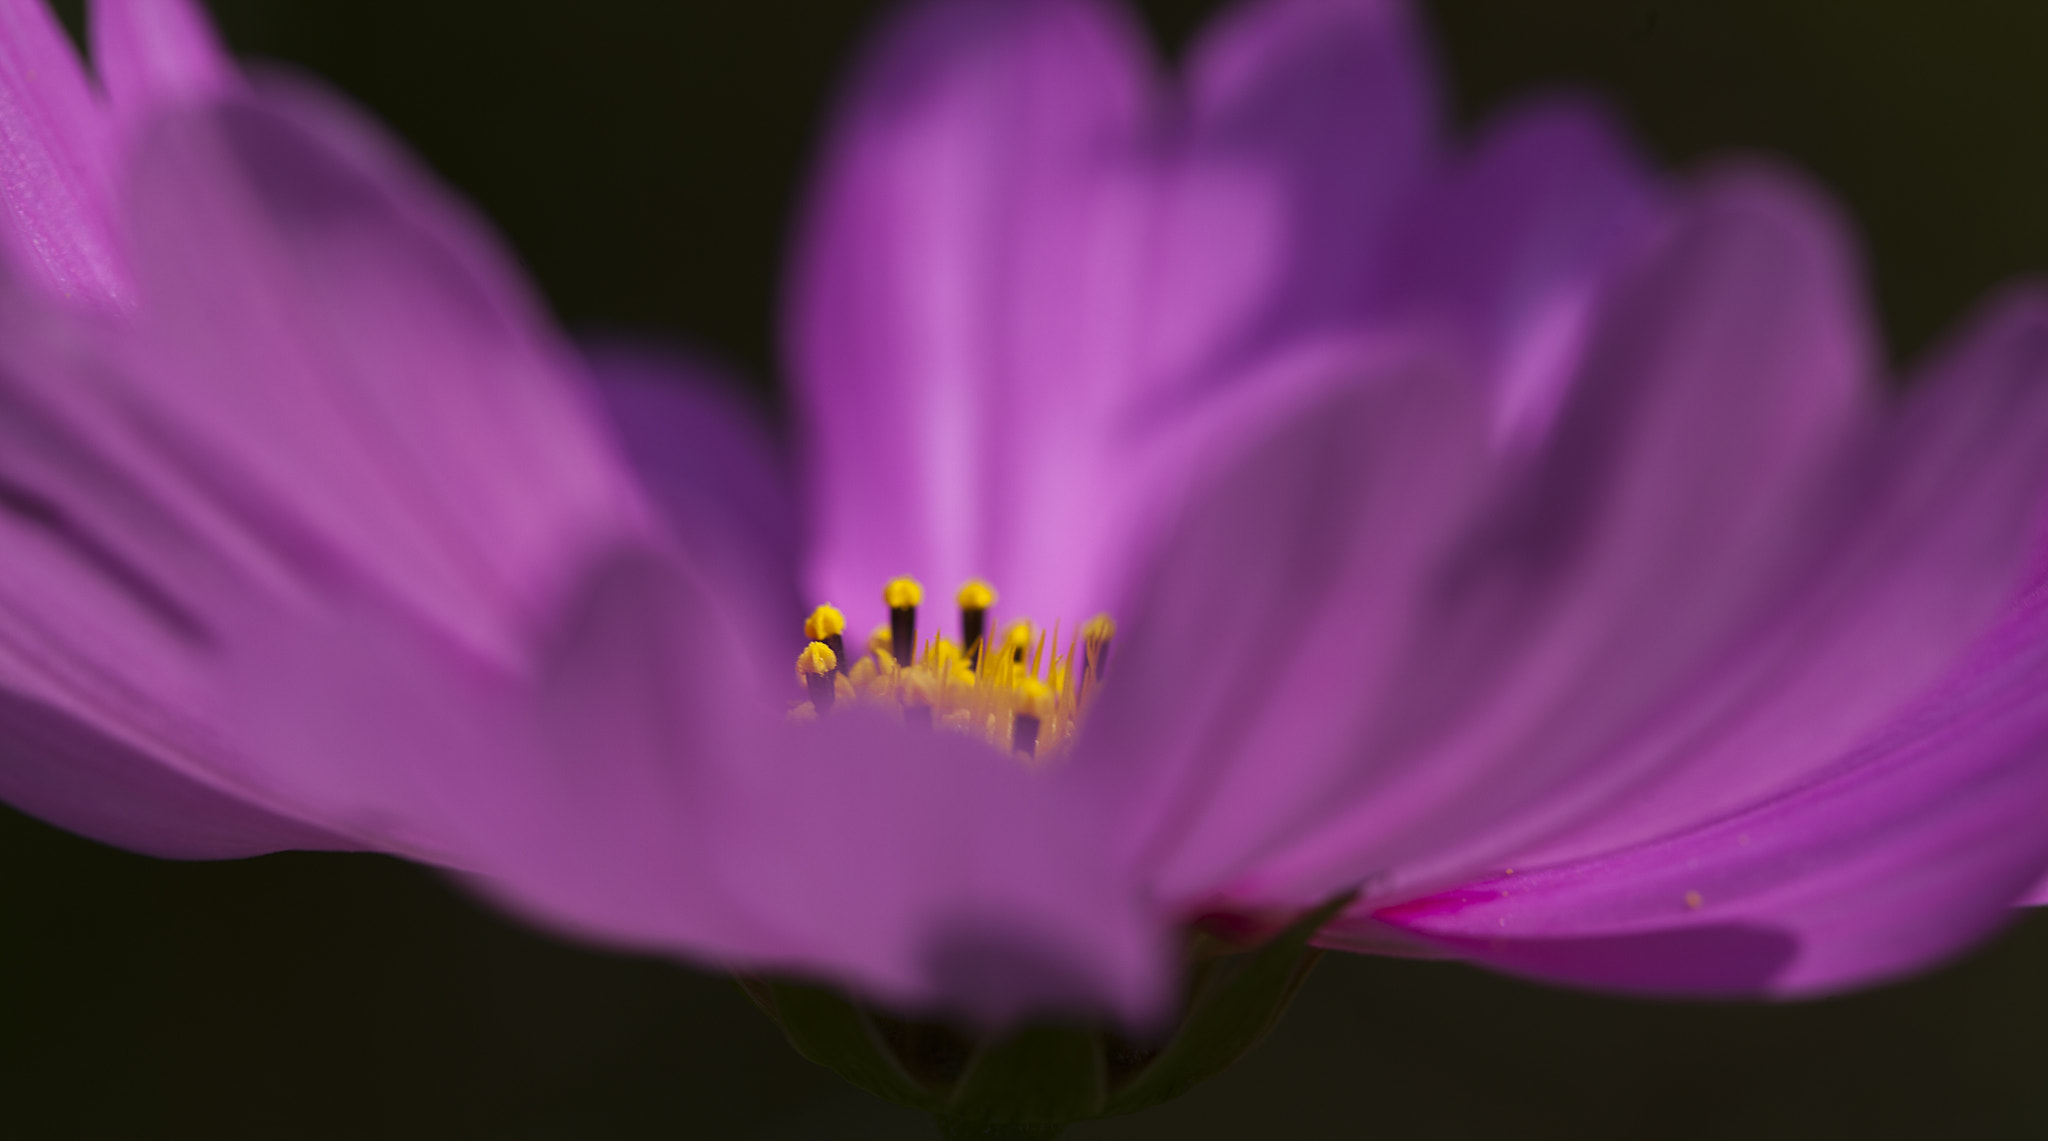 Photograph The beuty of cosmos  by Isti kaori on 500px